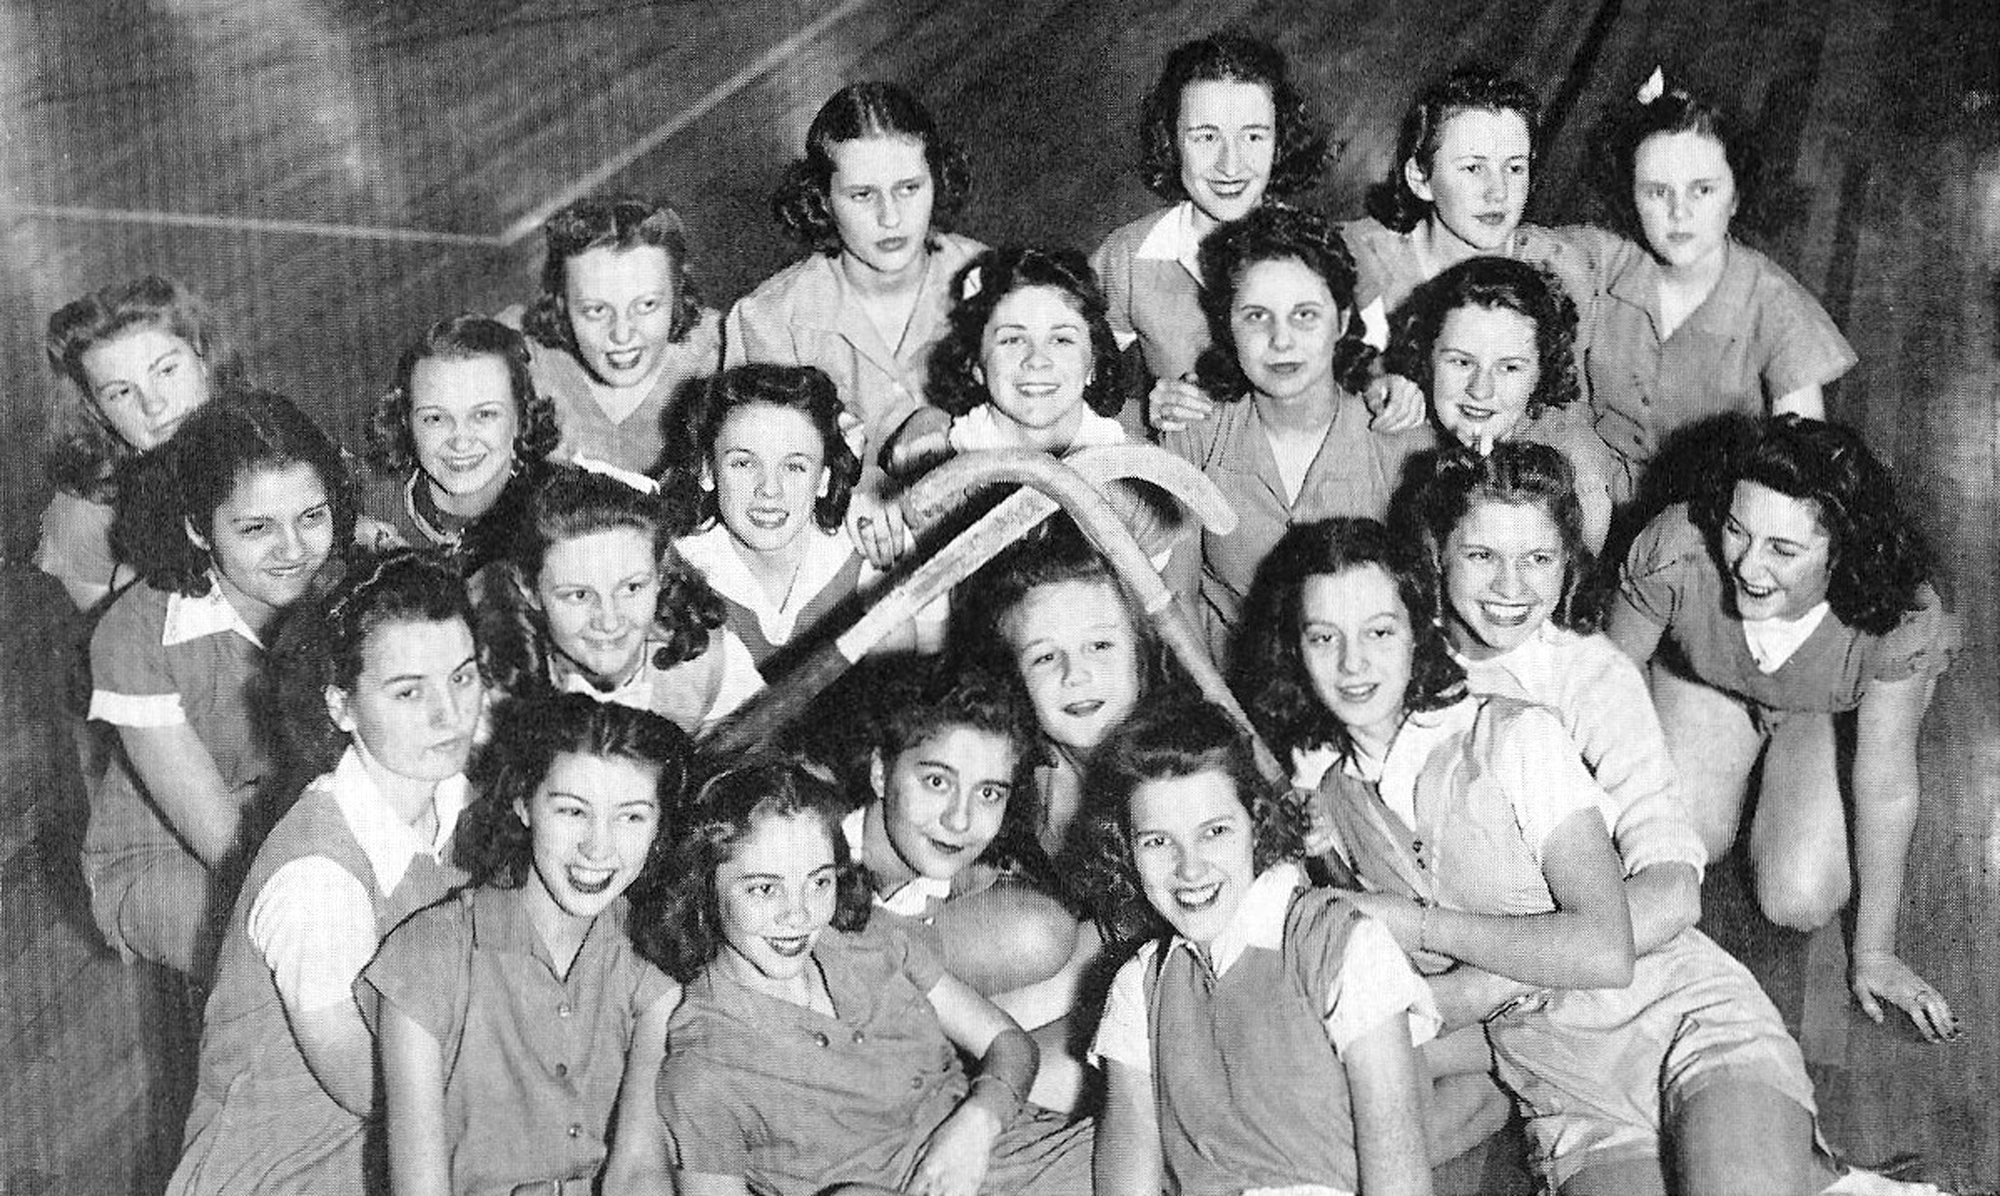 The SHS senior hockey team in 1940 included Estelle Folsom, Louise Reynolds, Dorothea Bultman, Lucy Barringer, Louise Nance, Gwen Hatfield, Margaret Terry, Patsy Warren, Susan Williams, Eleanor Barwick, Mildred Burkett, Emma Parrott, Margaret Tucker, Zelda Barnett, Julia Evans, Alma Wilson, Connie Mathis, Betty Brown, Corinne Levy, Annie Mae Shaw, Melle Pringle and Dorothy Windham.